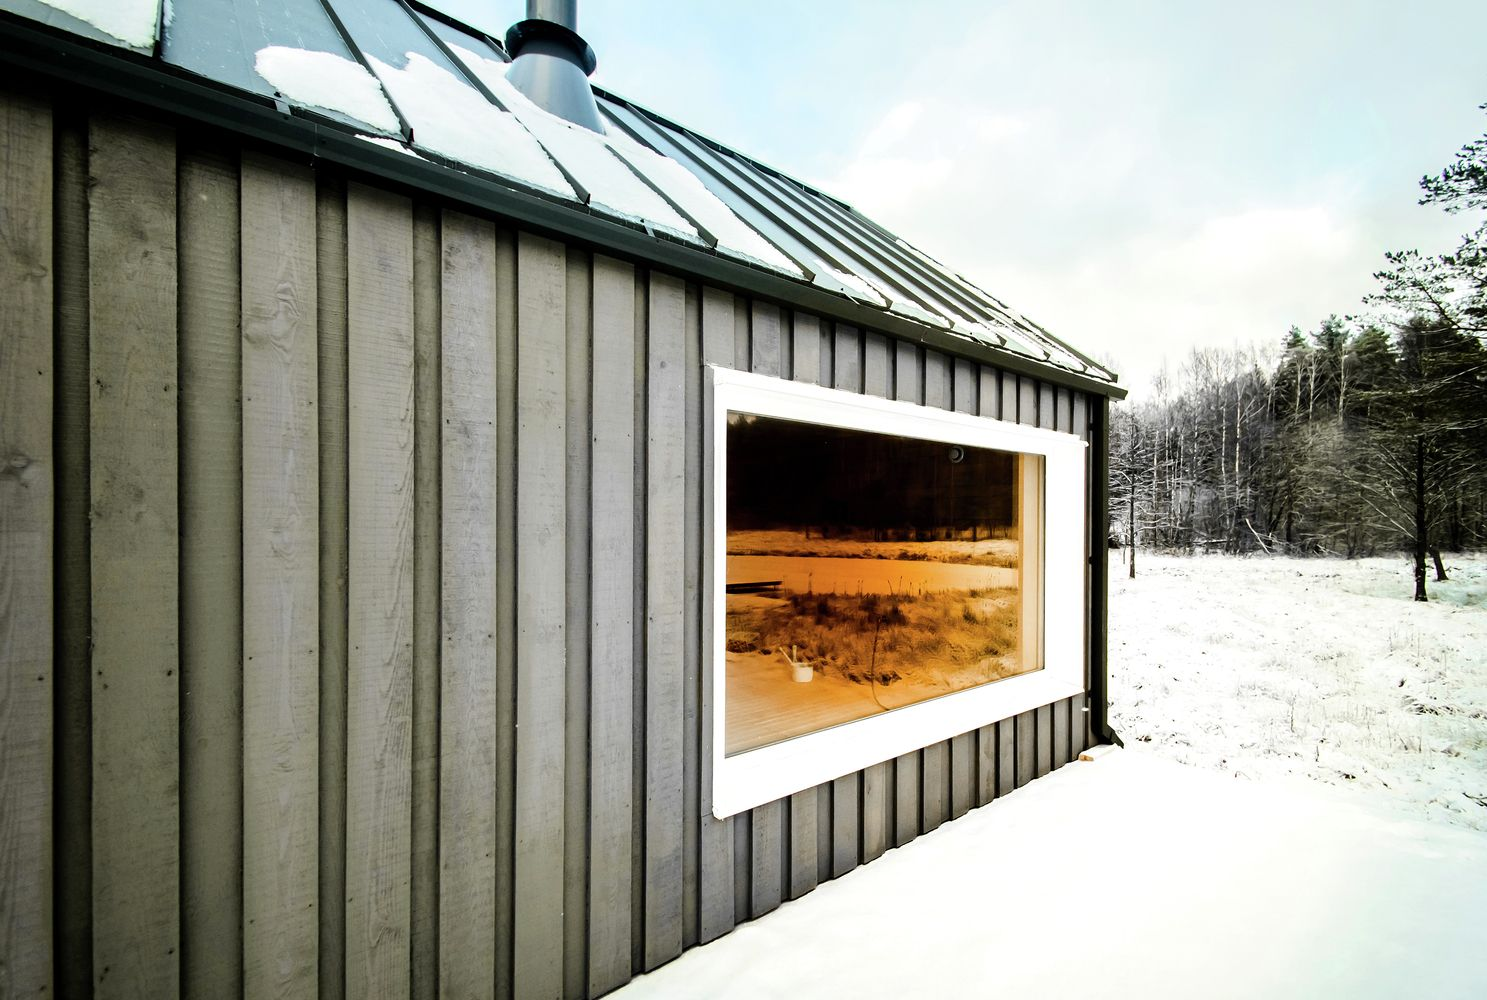 Gallery Of Lithuanian Hunting House Devyni Architektai 16 House In The Woods House And Home Magazine House